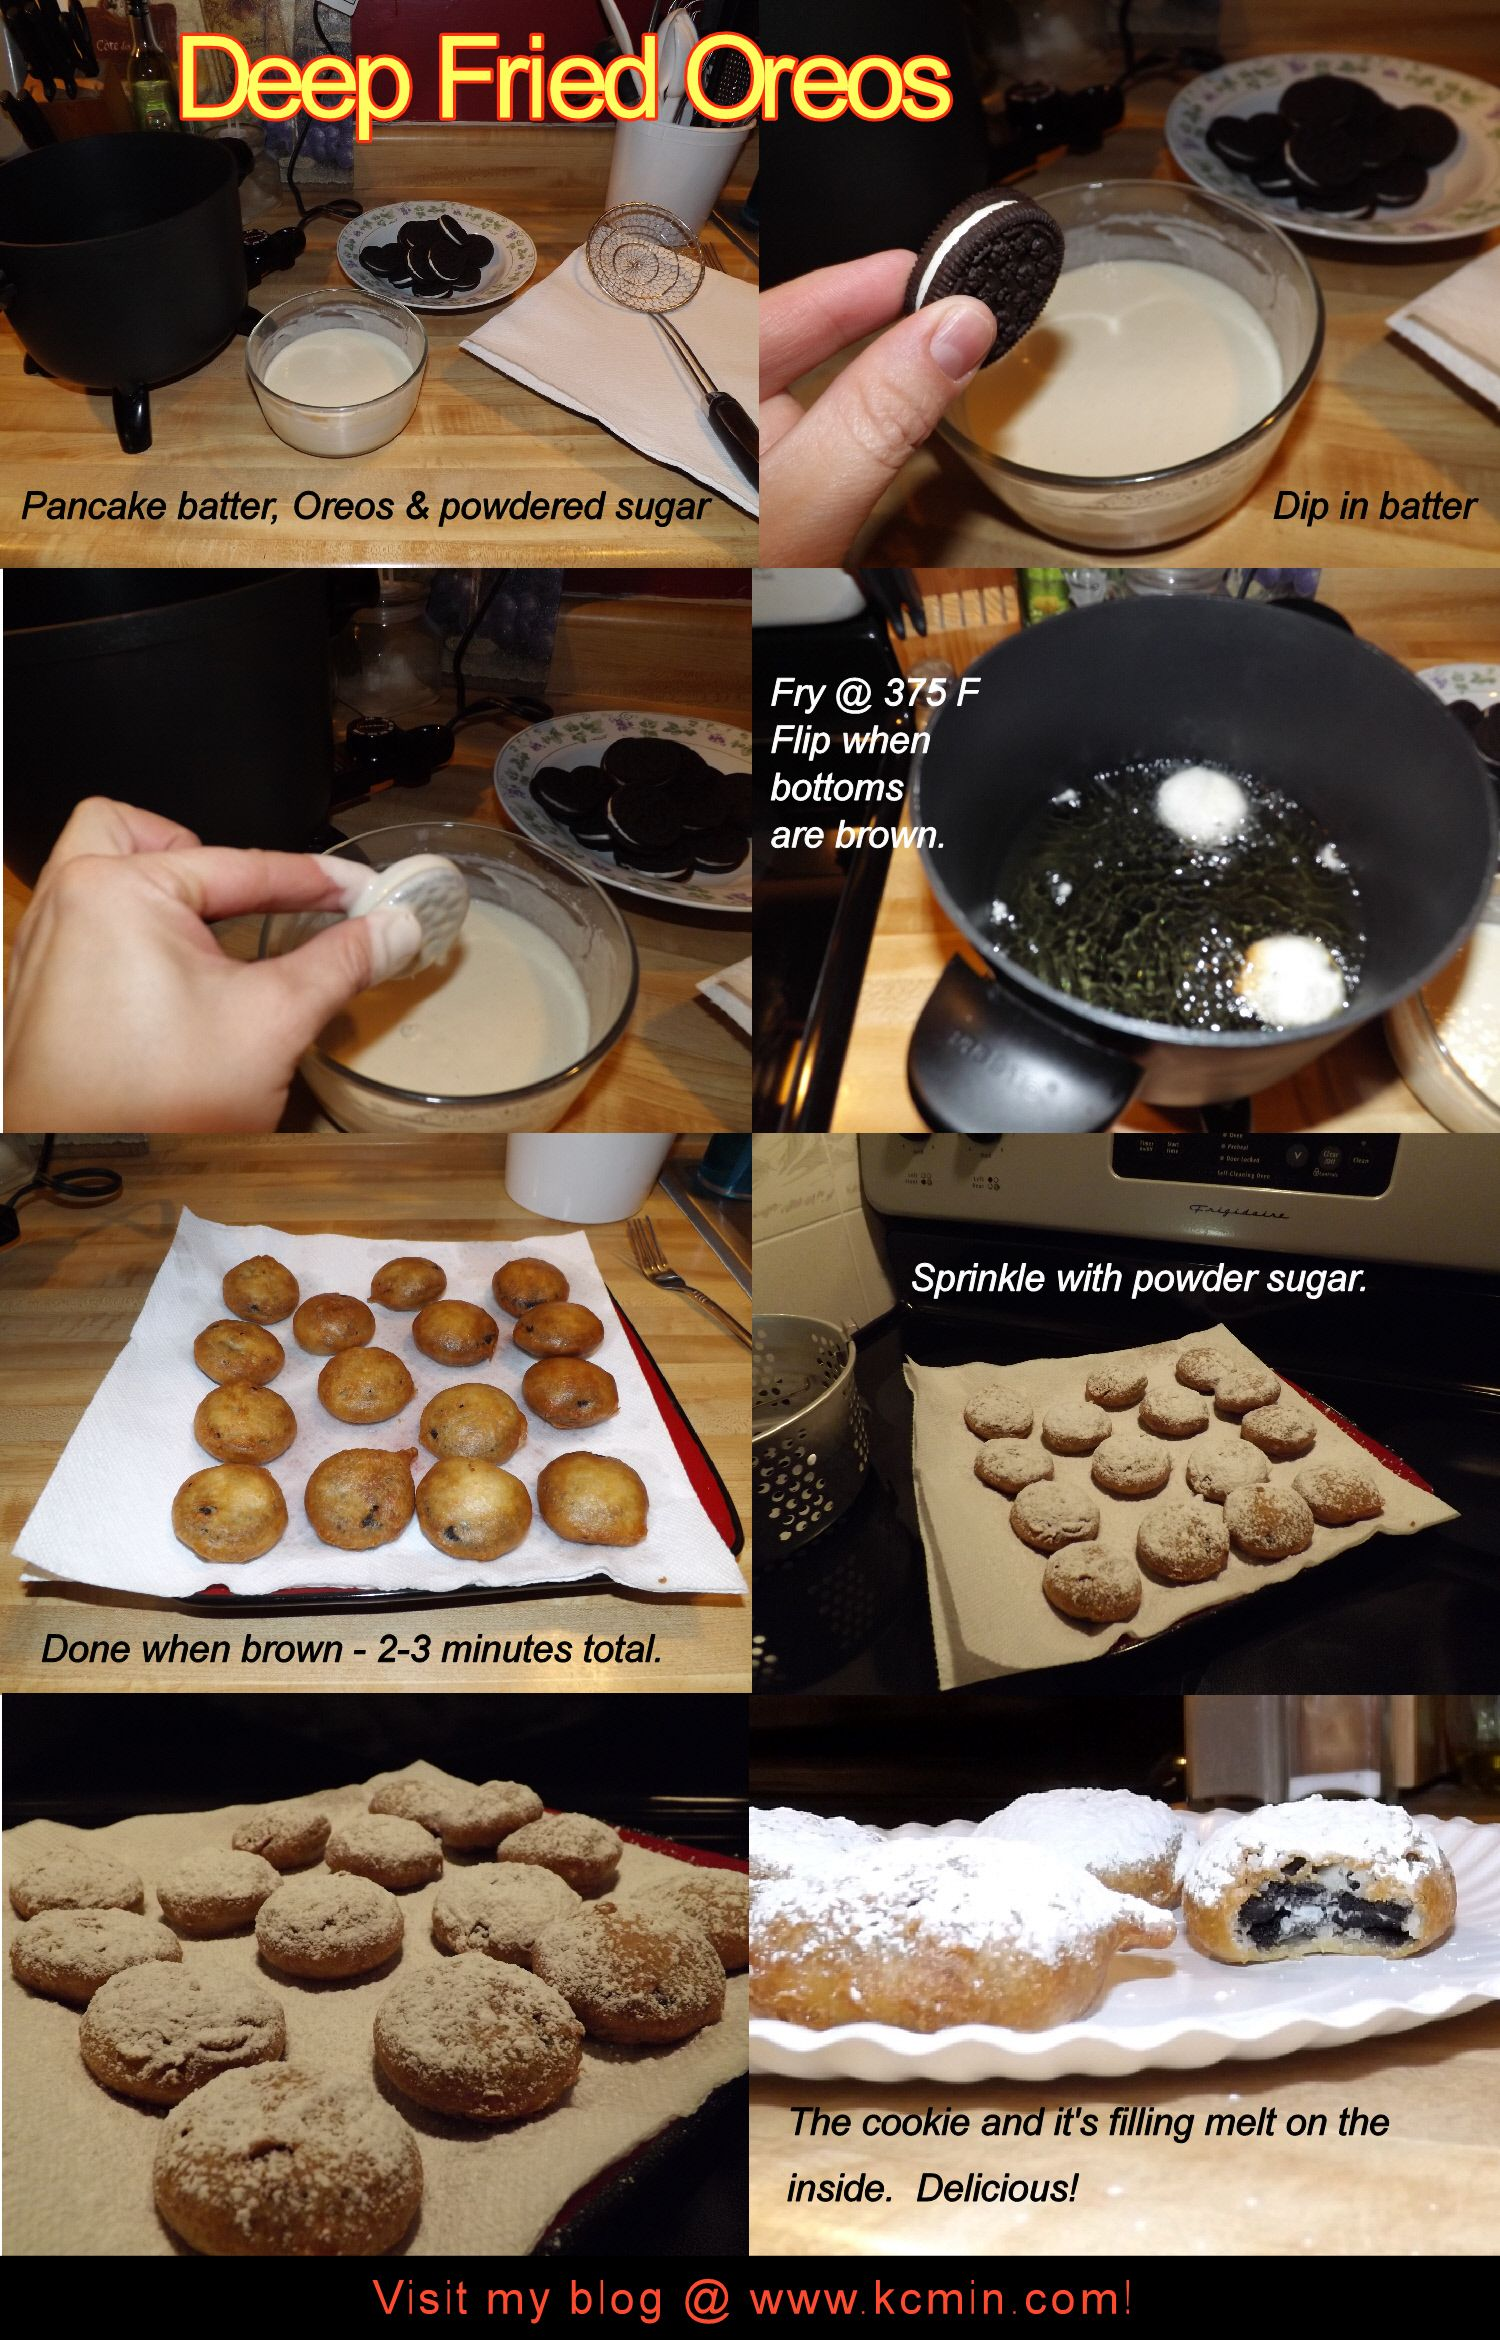 How to make deep fried oreos without a fryer